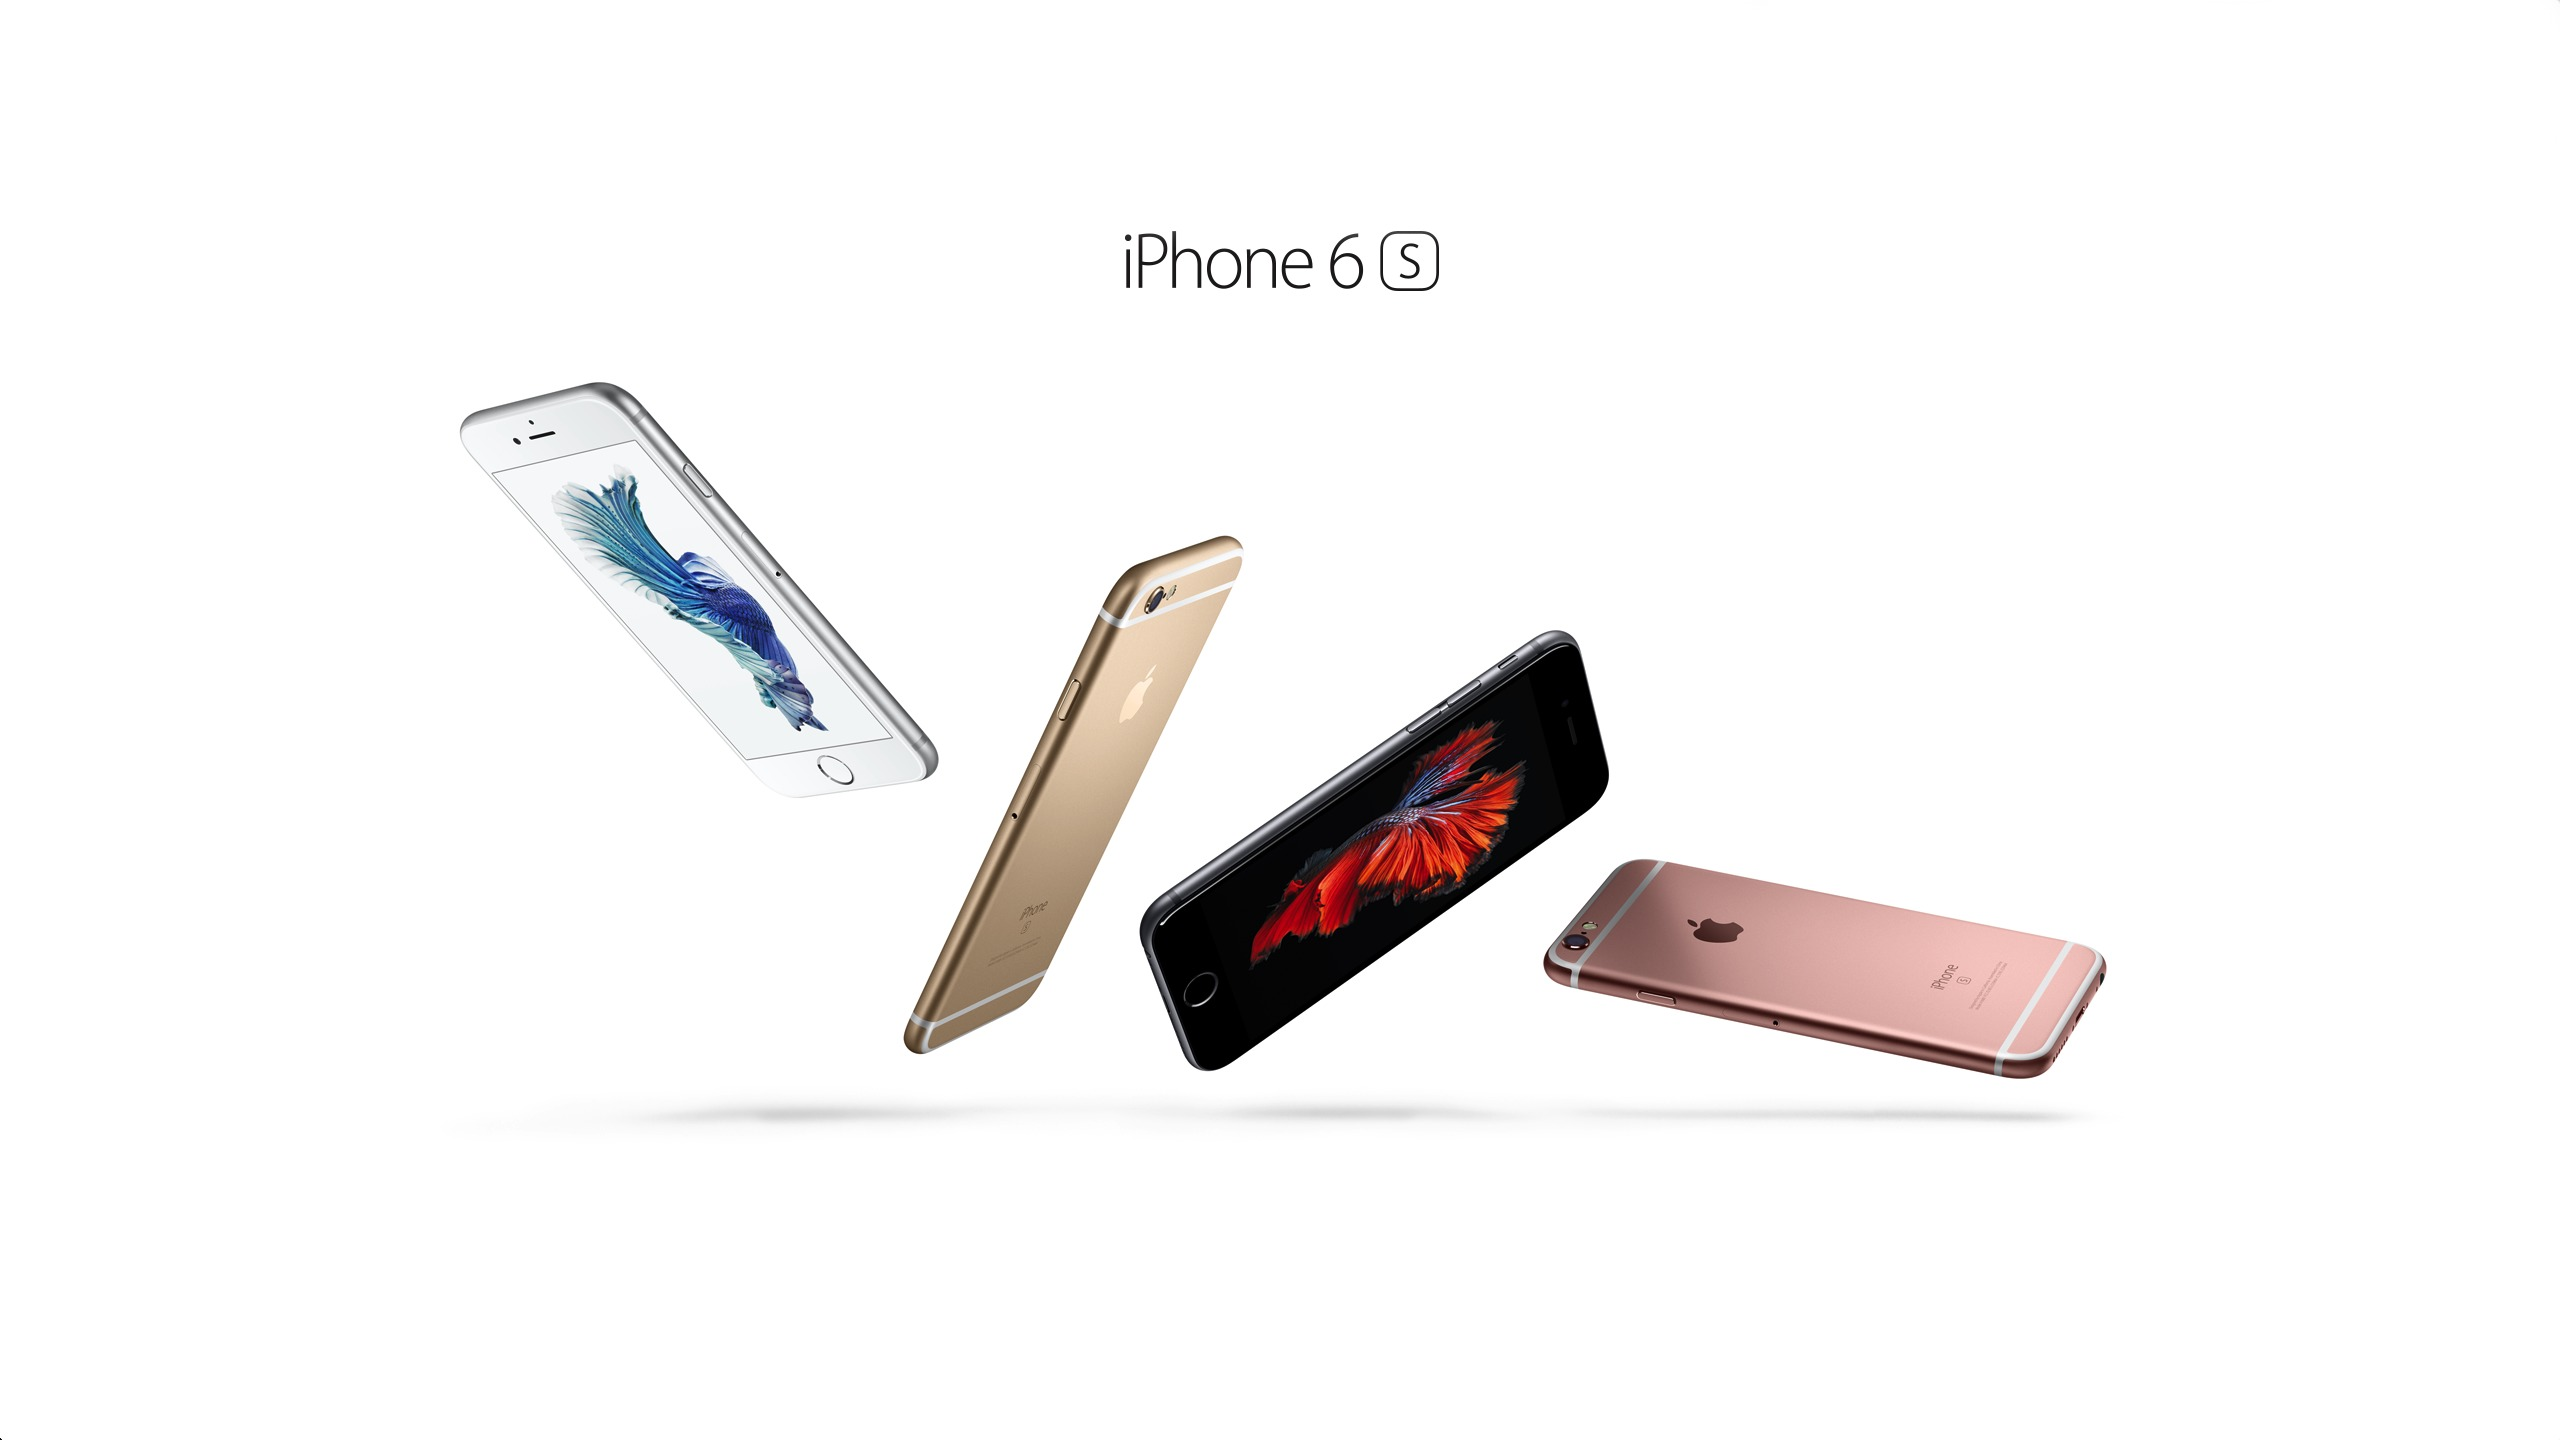 iPhone 6S4353210900 - iPhone 6S - PLAYSTATION, iPhone